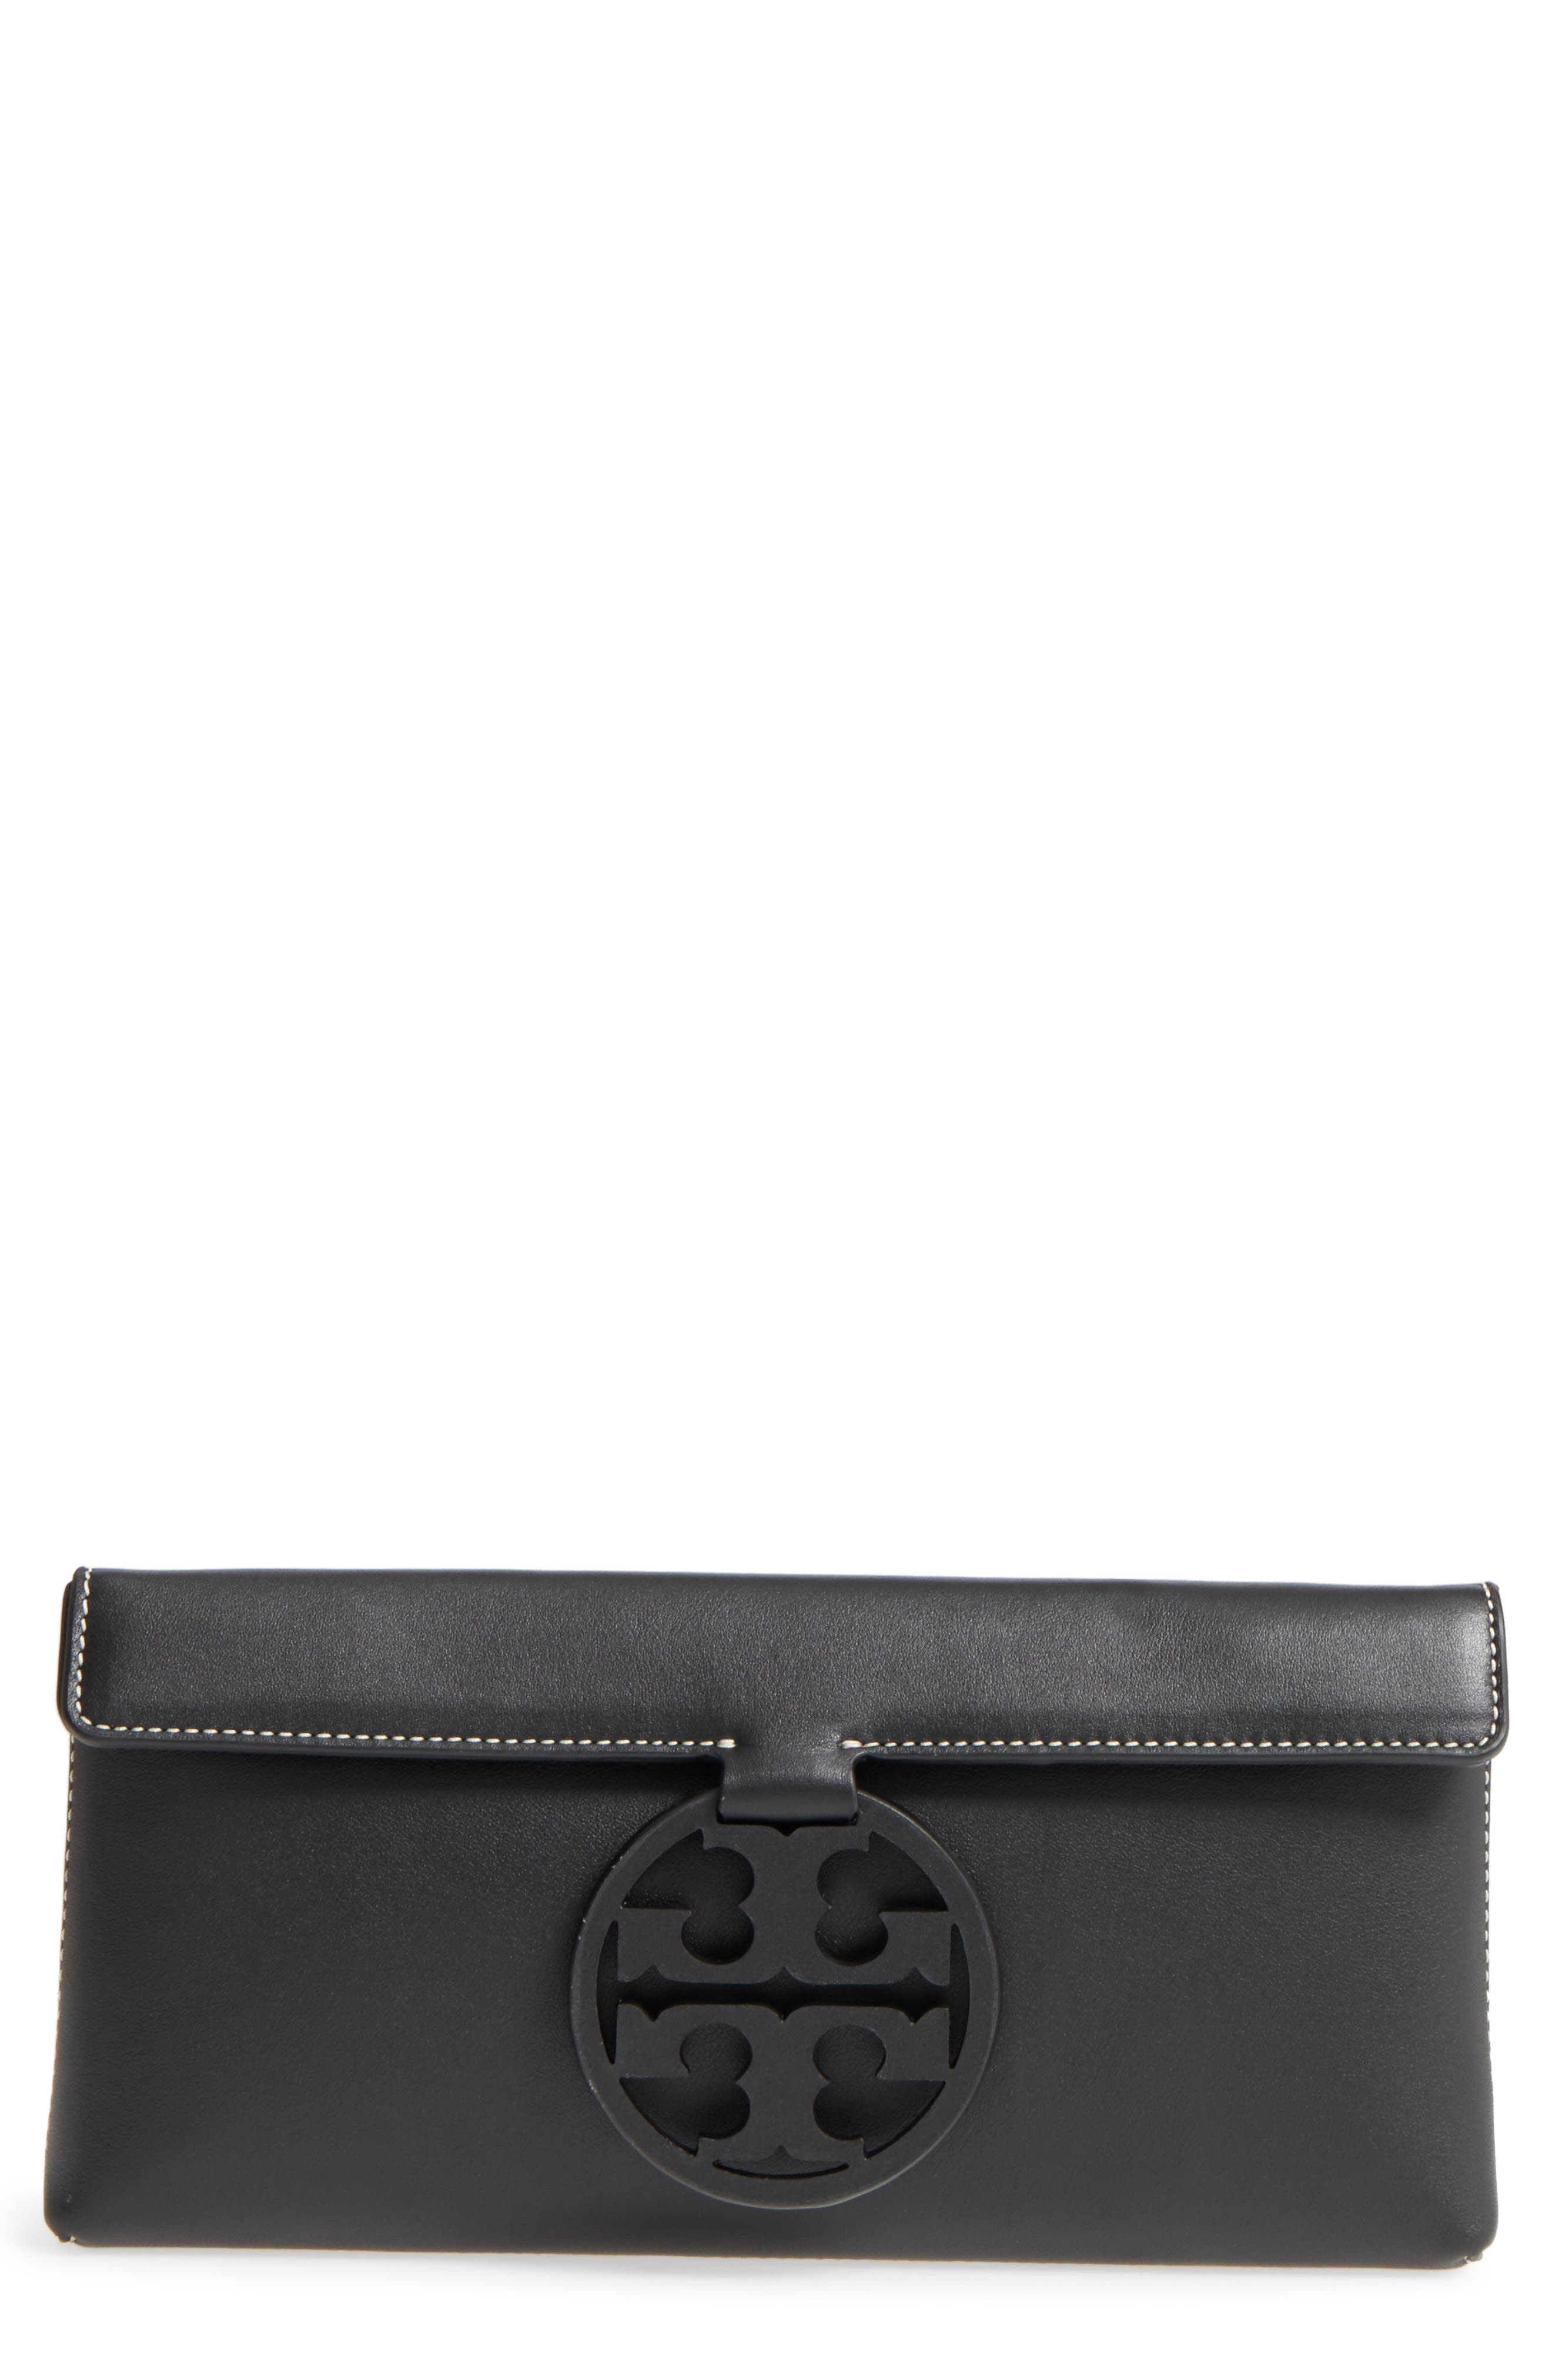 Main Image - Tory Burch Miller Leather Clutch